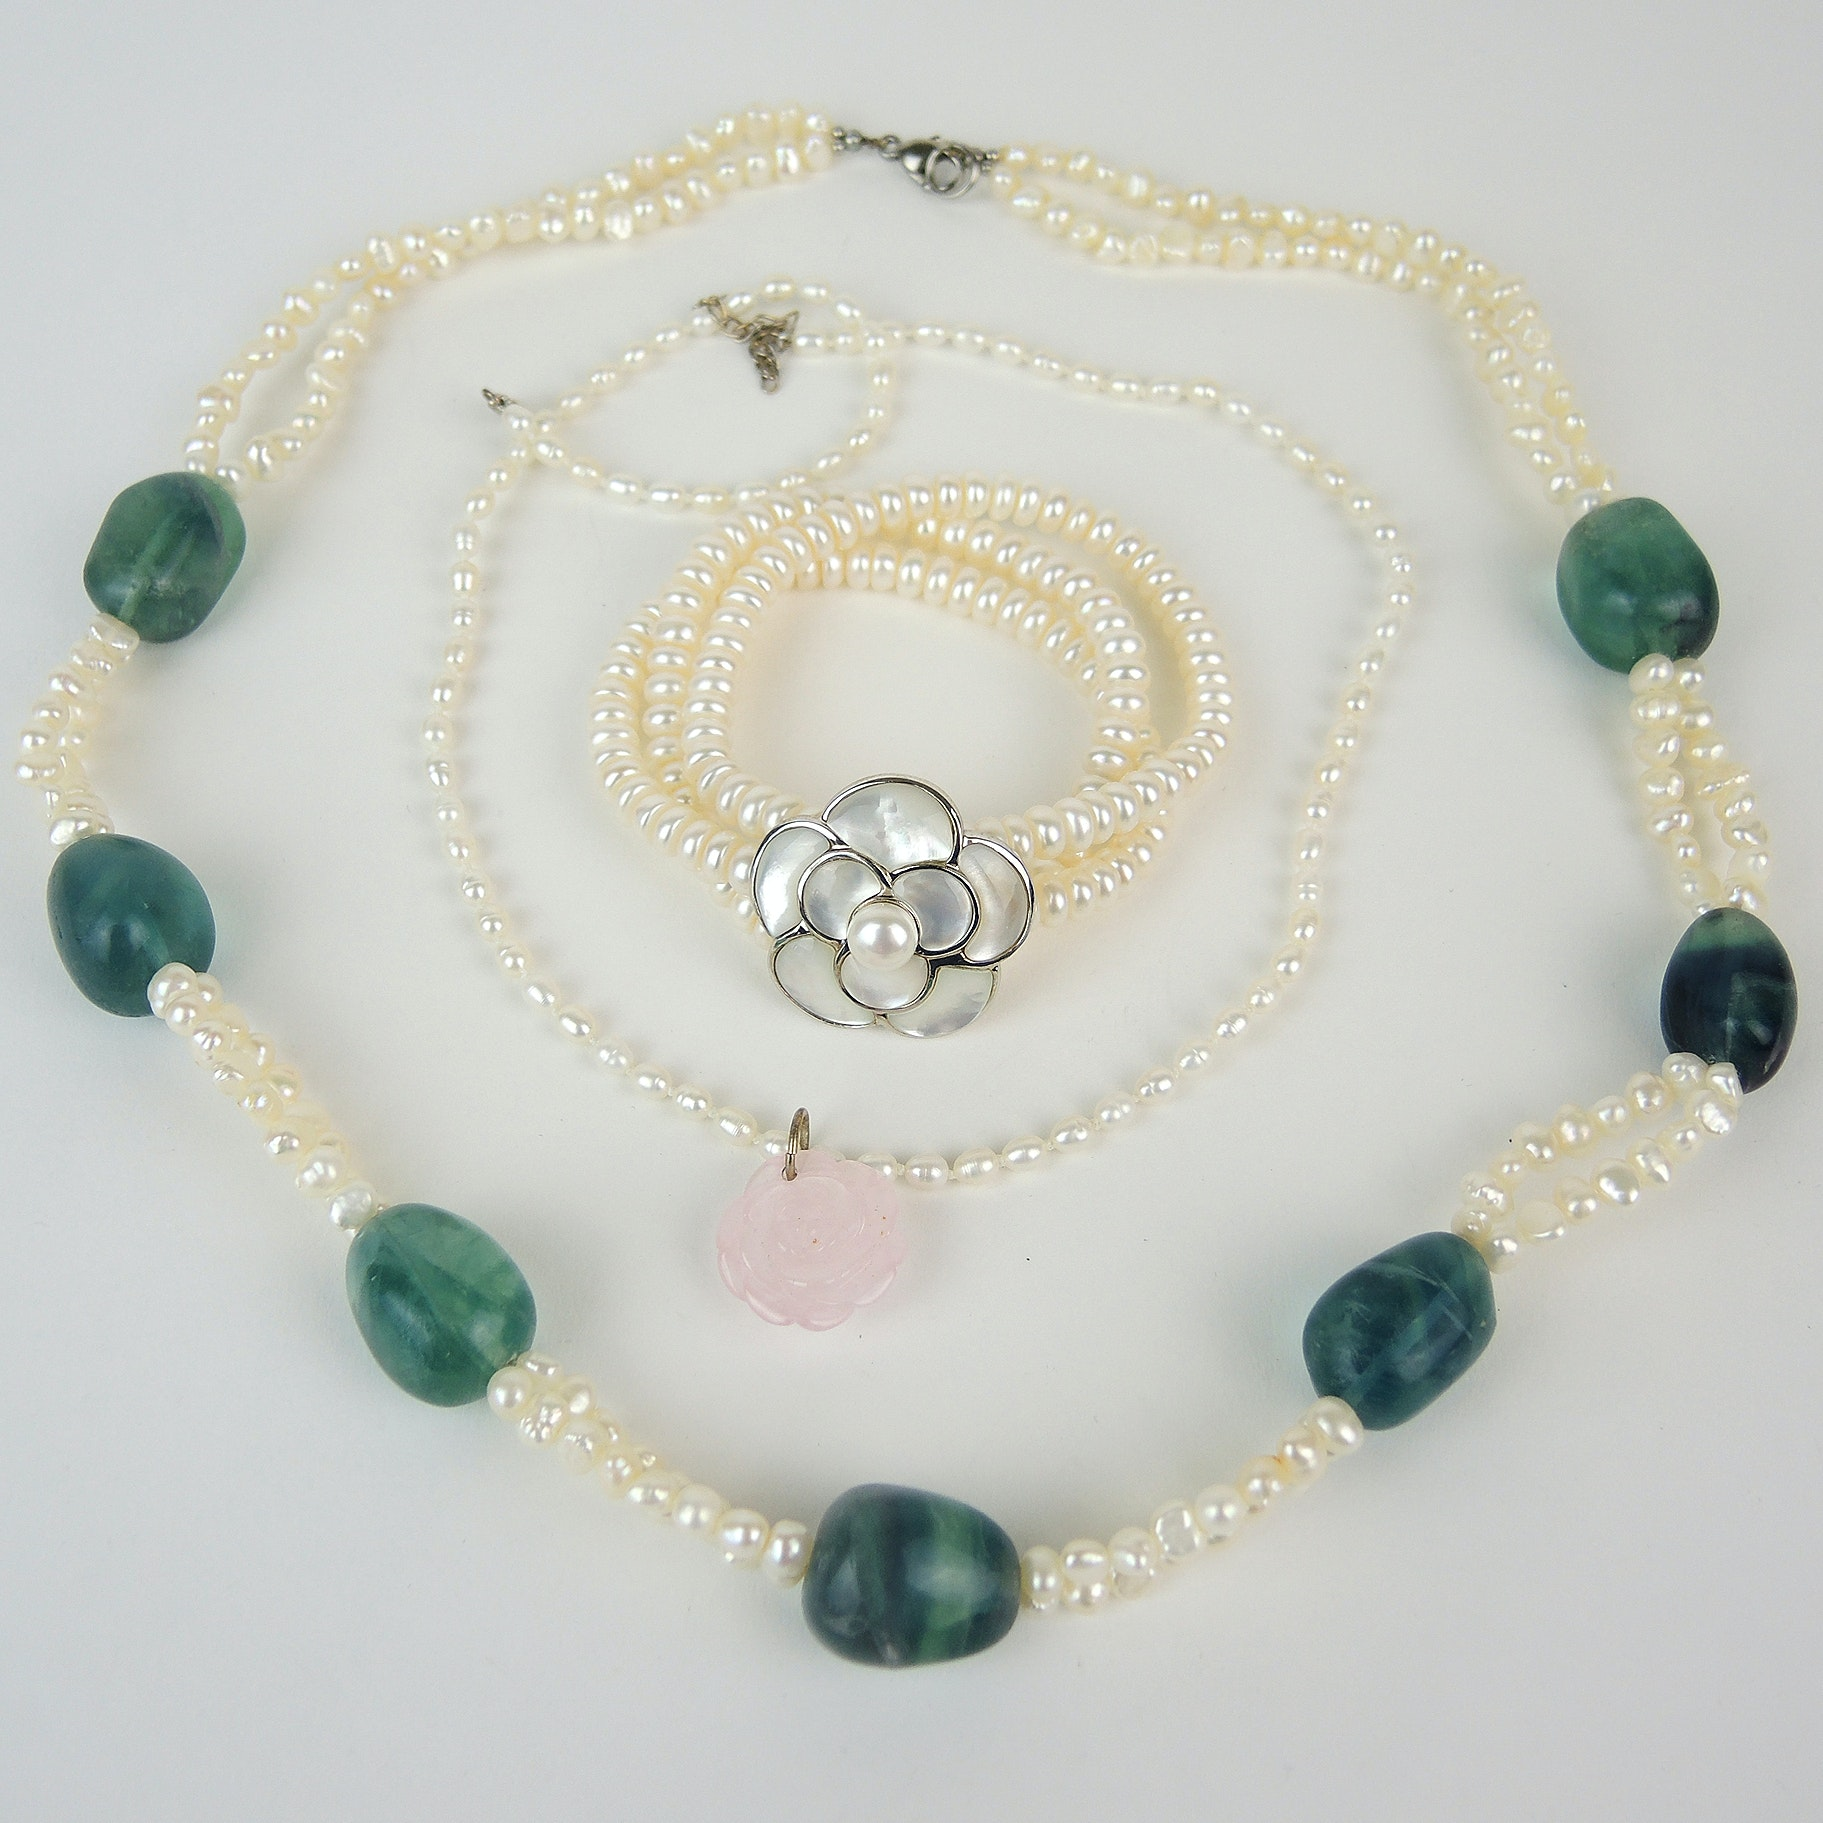 Sterling and Freshwater Pearl Jewelry Featuring Fluorite and Rose Quartz